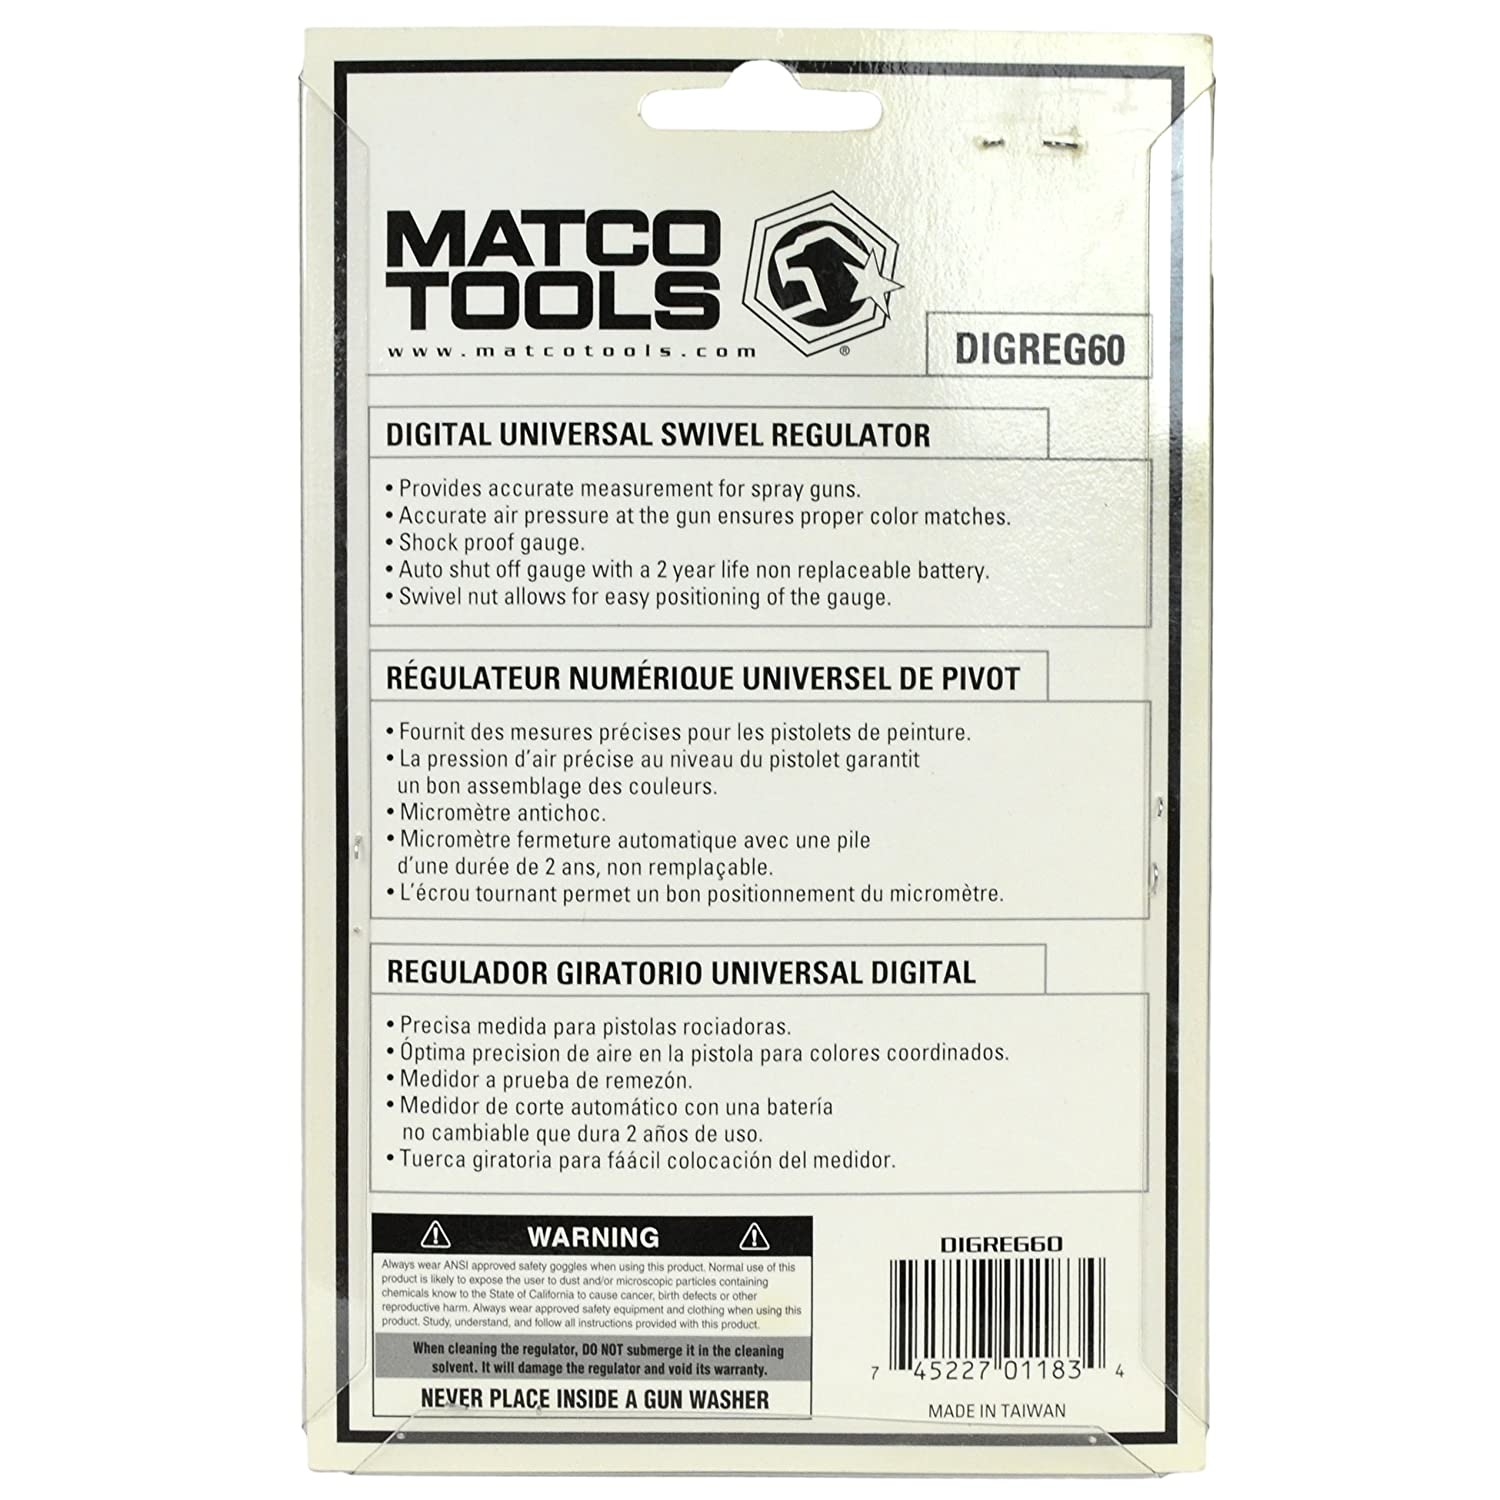 Amazon.com : Matco Tools DIGREG60 Digital Universal Swivel Regulator : Sports & Outdoors